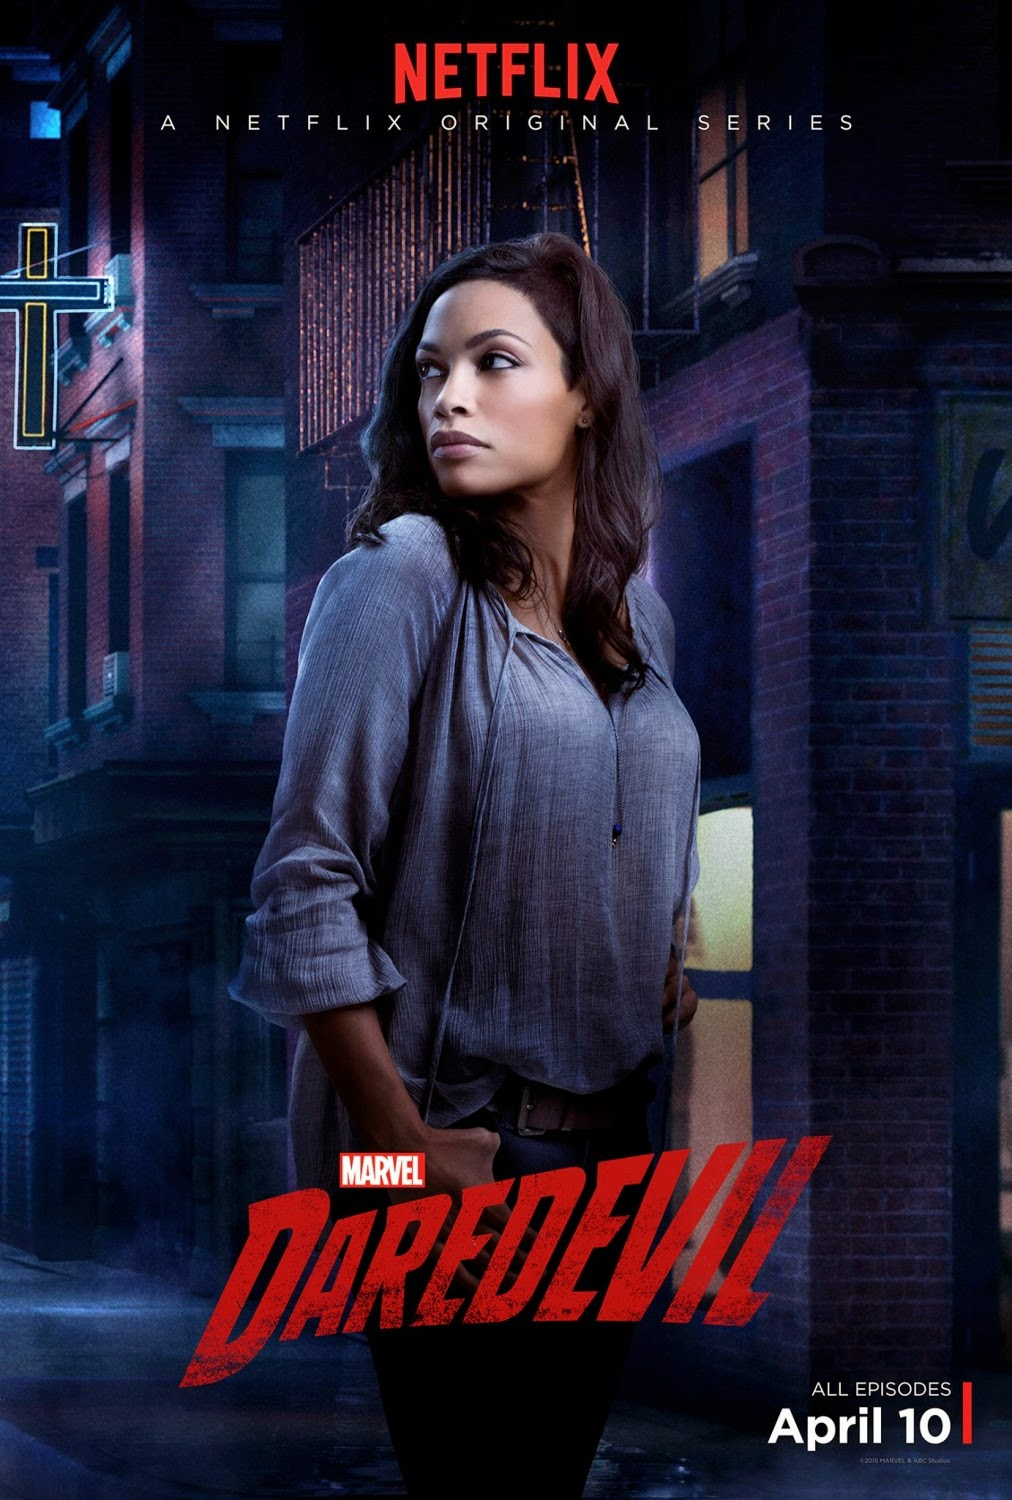 Marvel's Daredevil Character Television Poster Set - Rosario Dawson as Claire Temple